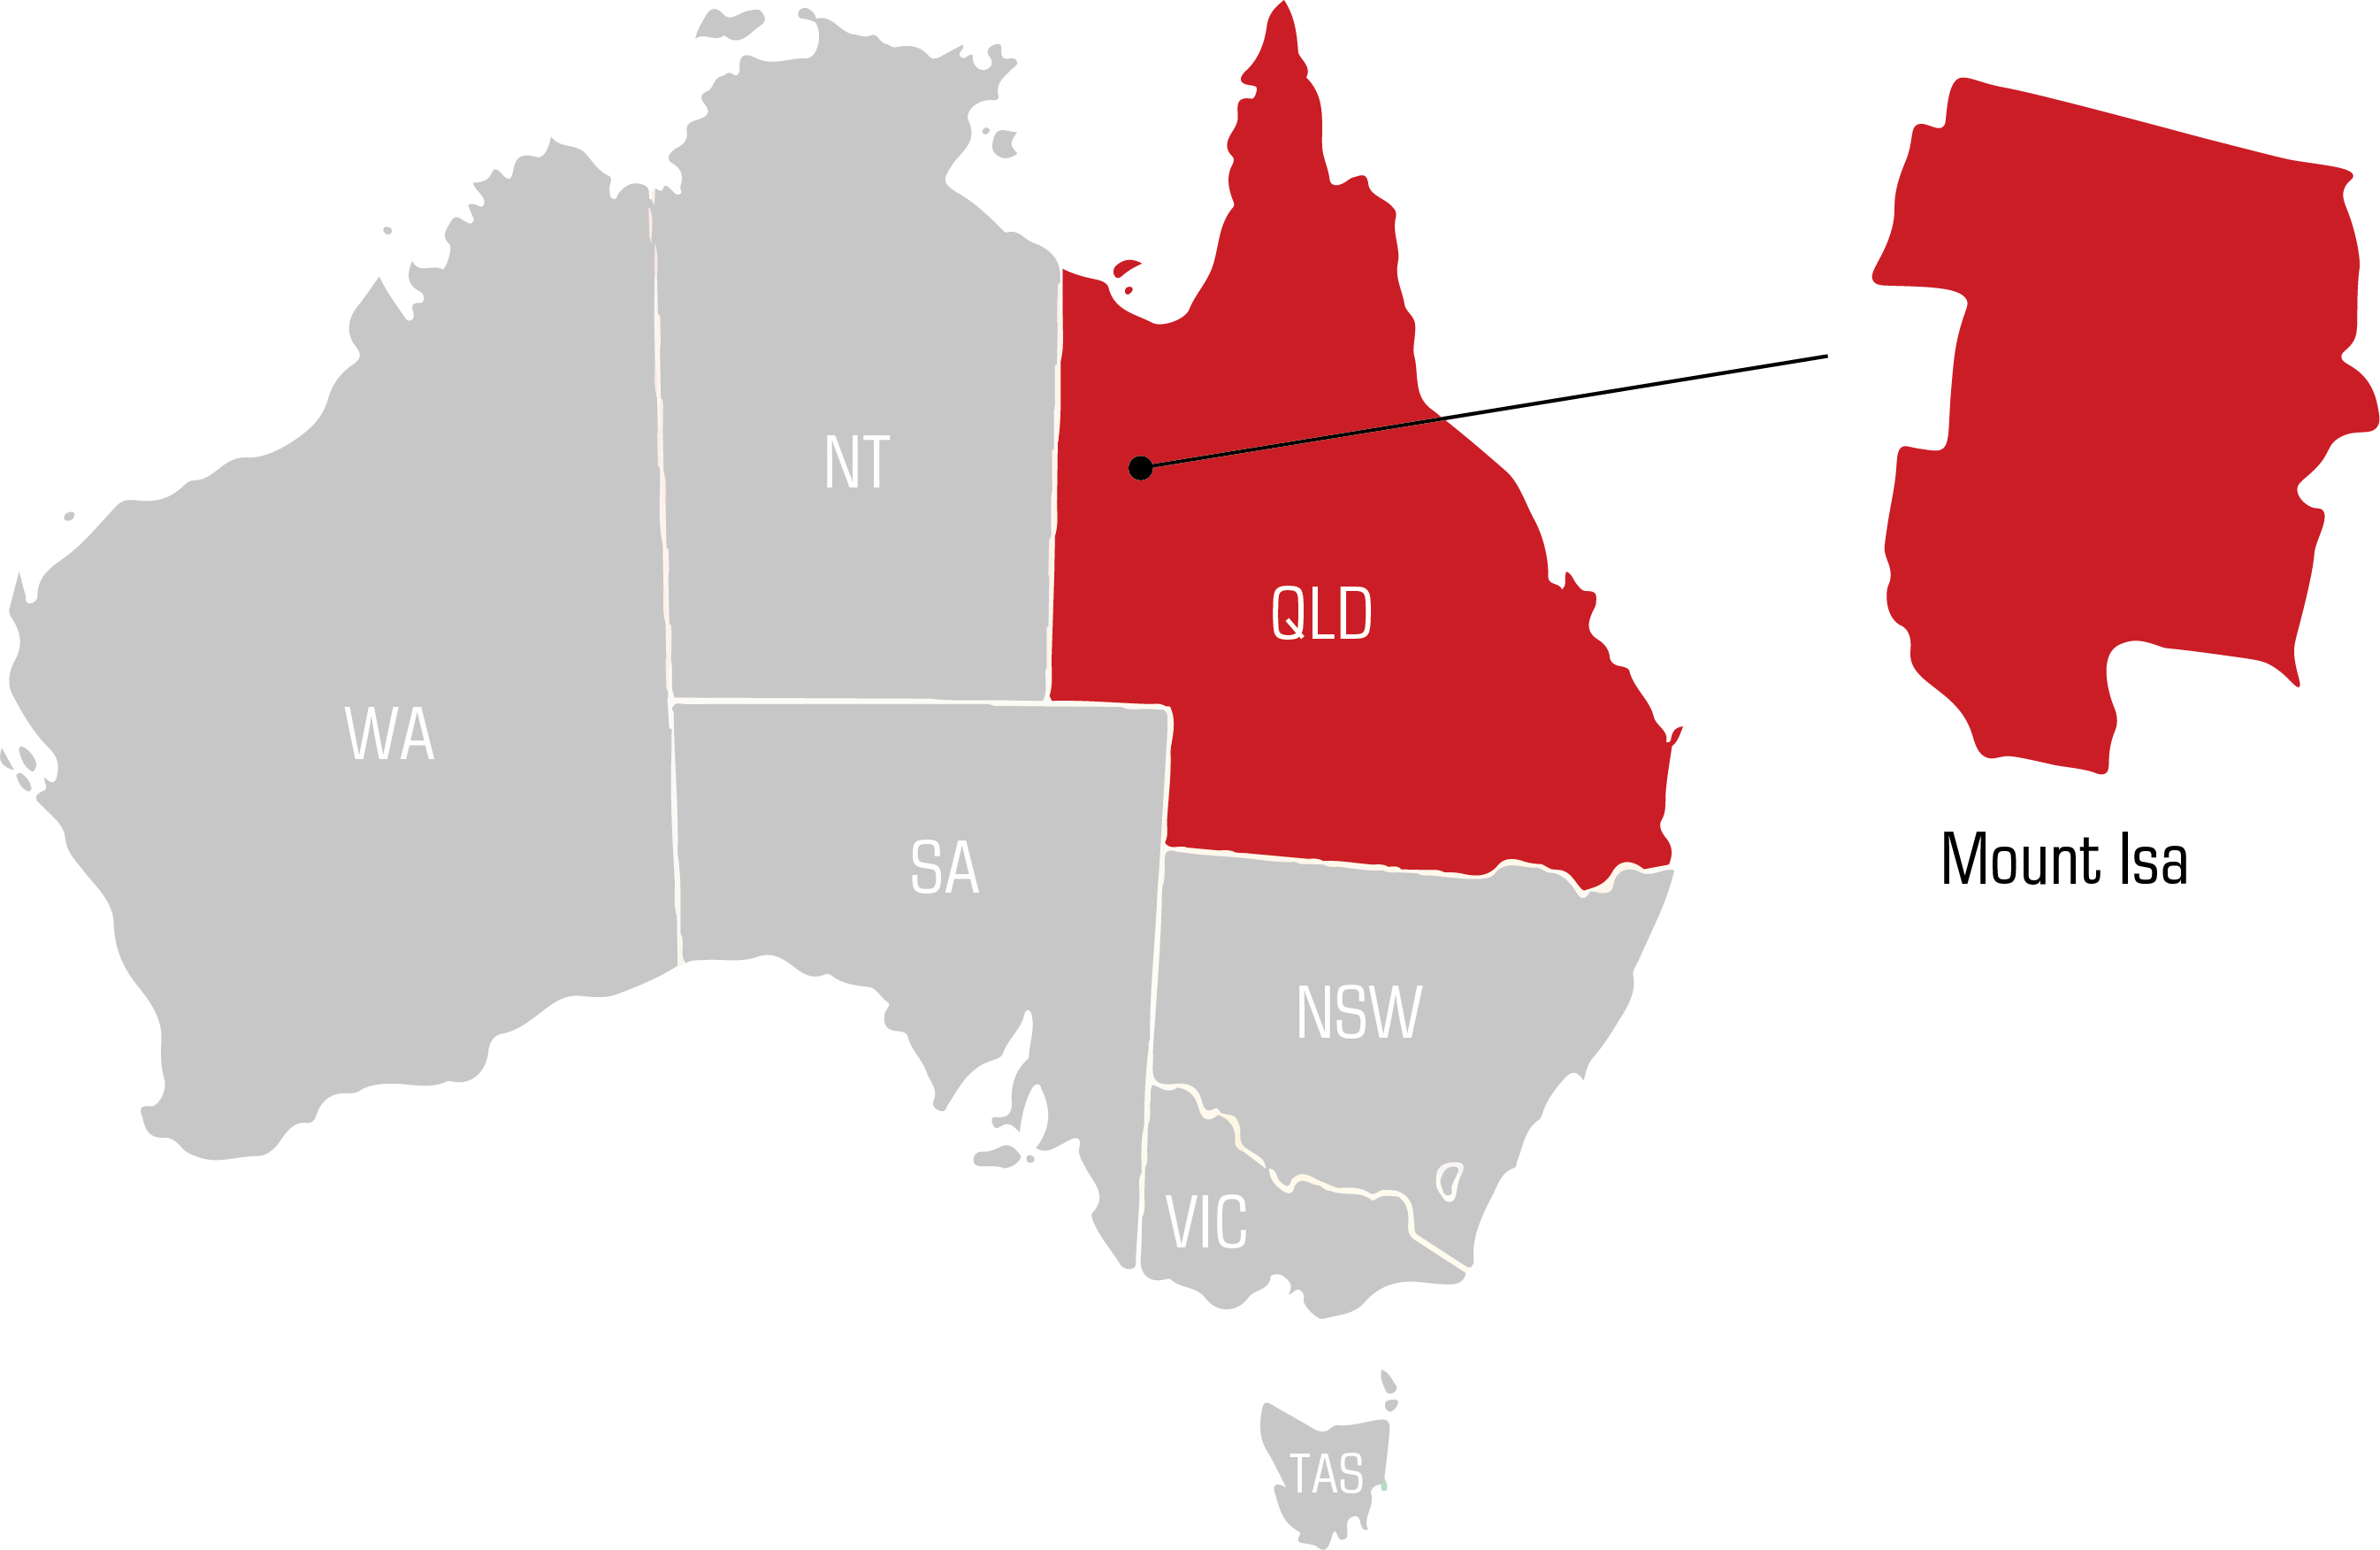 QWS Mt isa Welding Supplies map